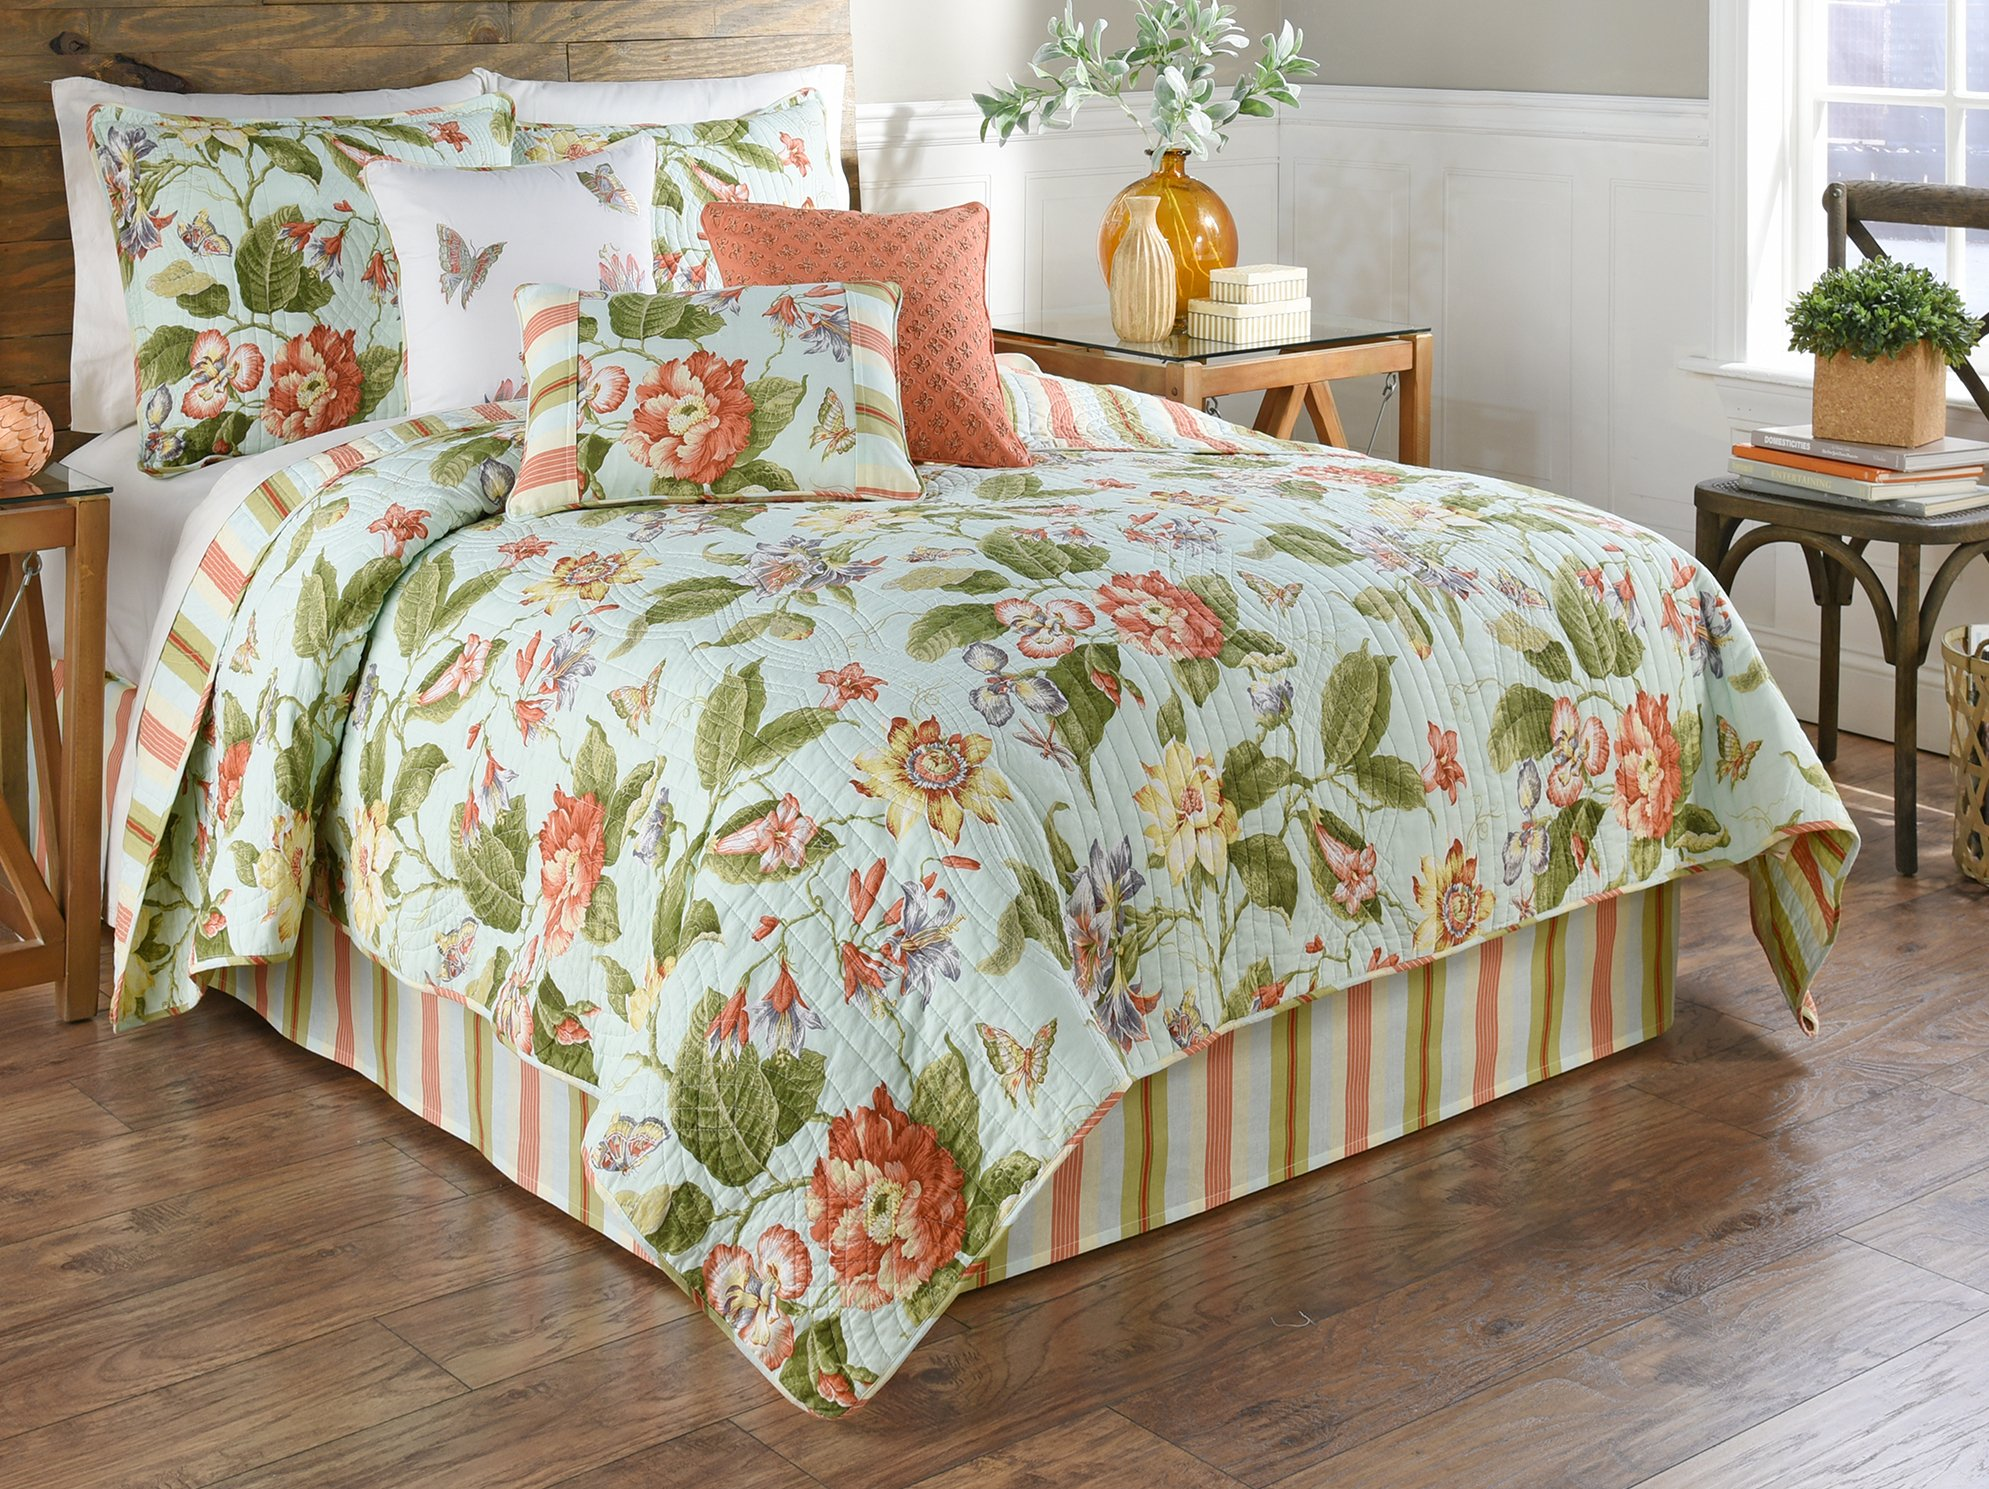 WAVERLY Laurel Springs 3-Piece Opal Reversible Quilt Collection, Twin, by WAVERLY